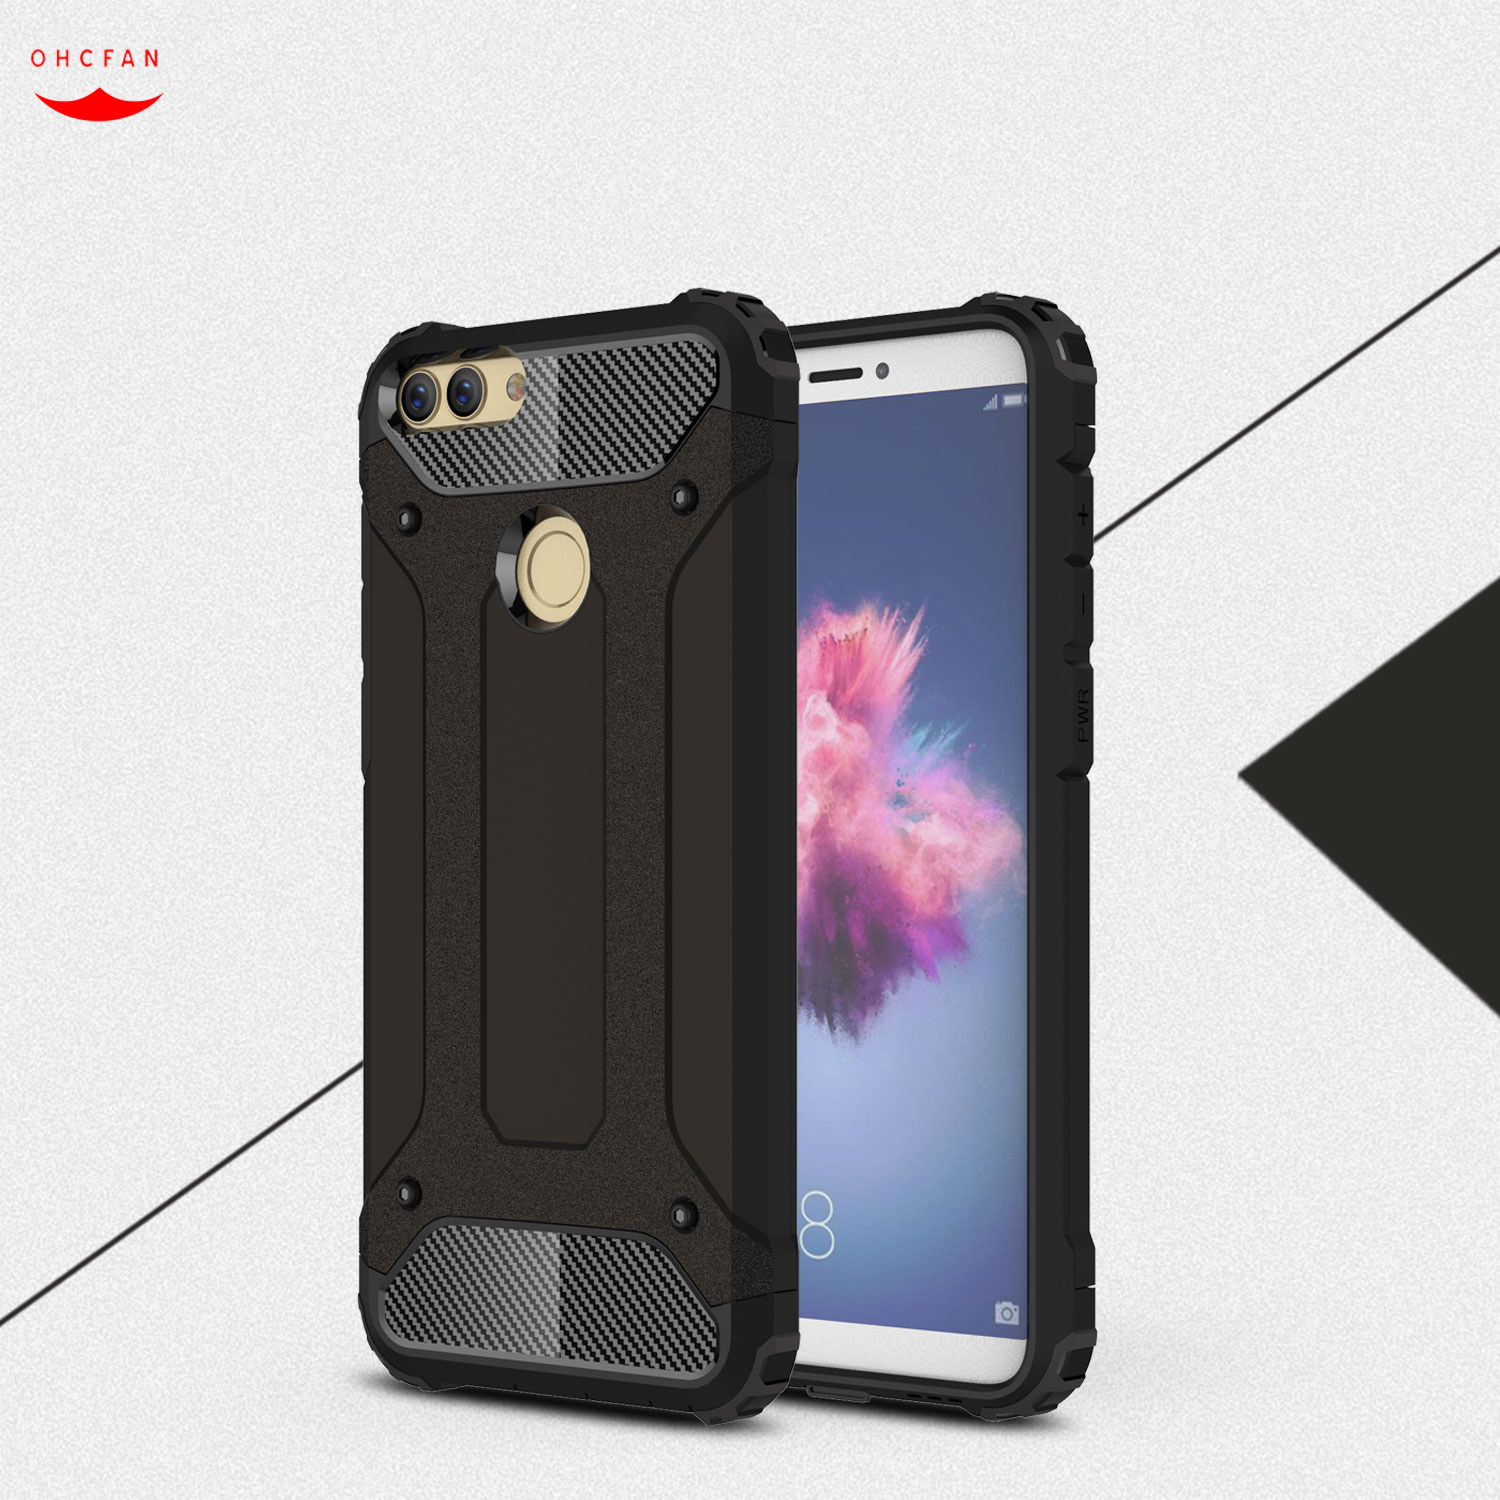 Luxury Hard Protect full Cover Case for Huawei P Smart Hard Dirt Resistant Back Armor Cover